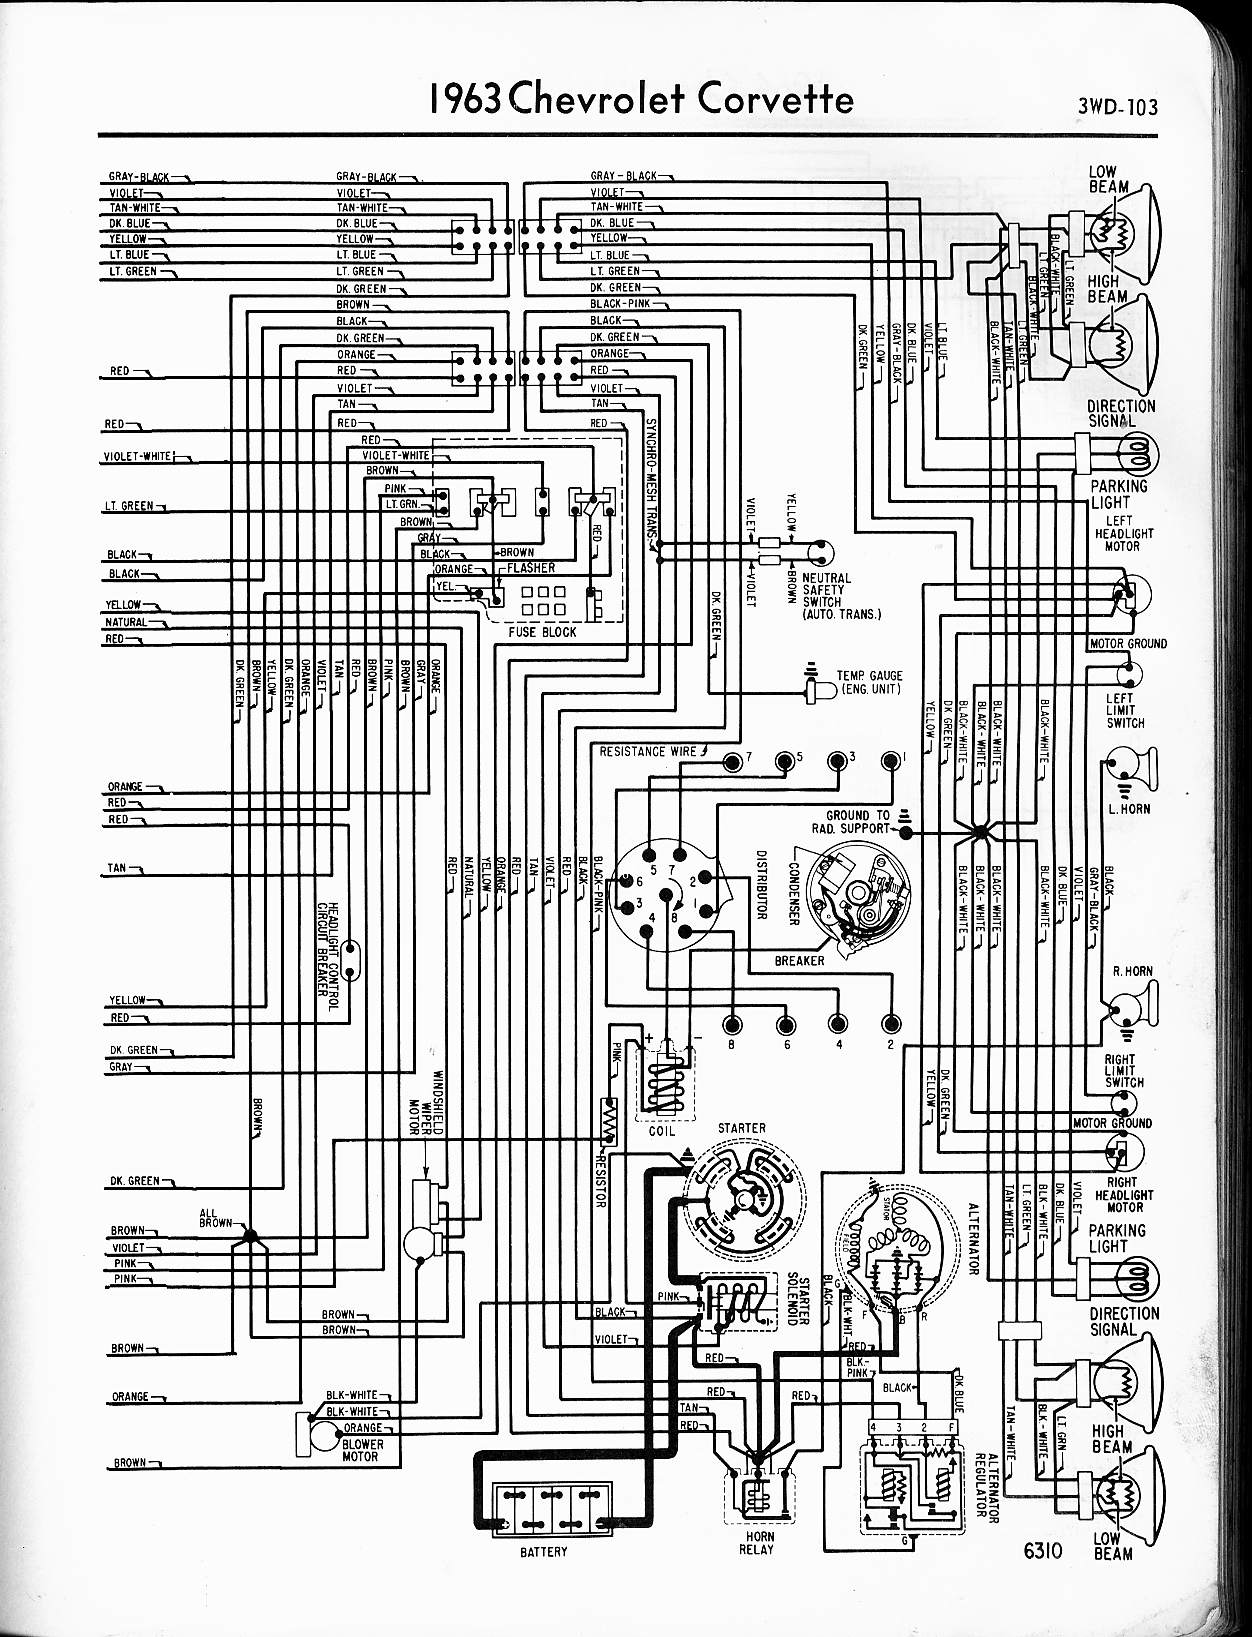 1976 Toyota Wiring Harness Diagram Library 1974 F250 57 65 Chevy Diagrams Rh Oldcarmanualproject Com 1965 Corvette